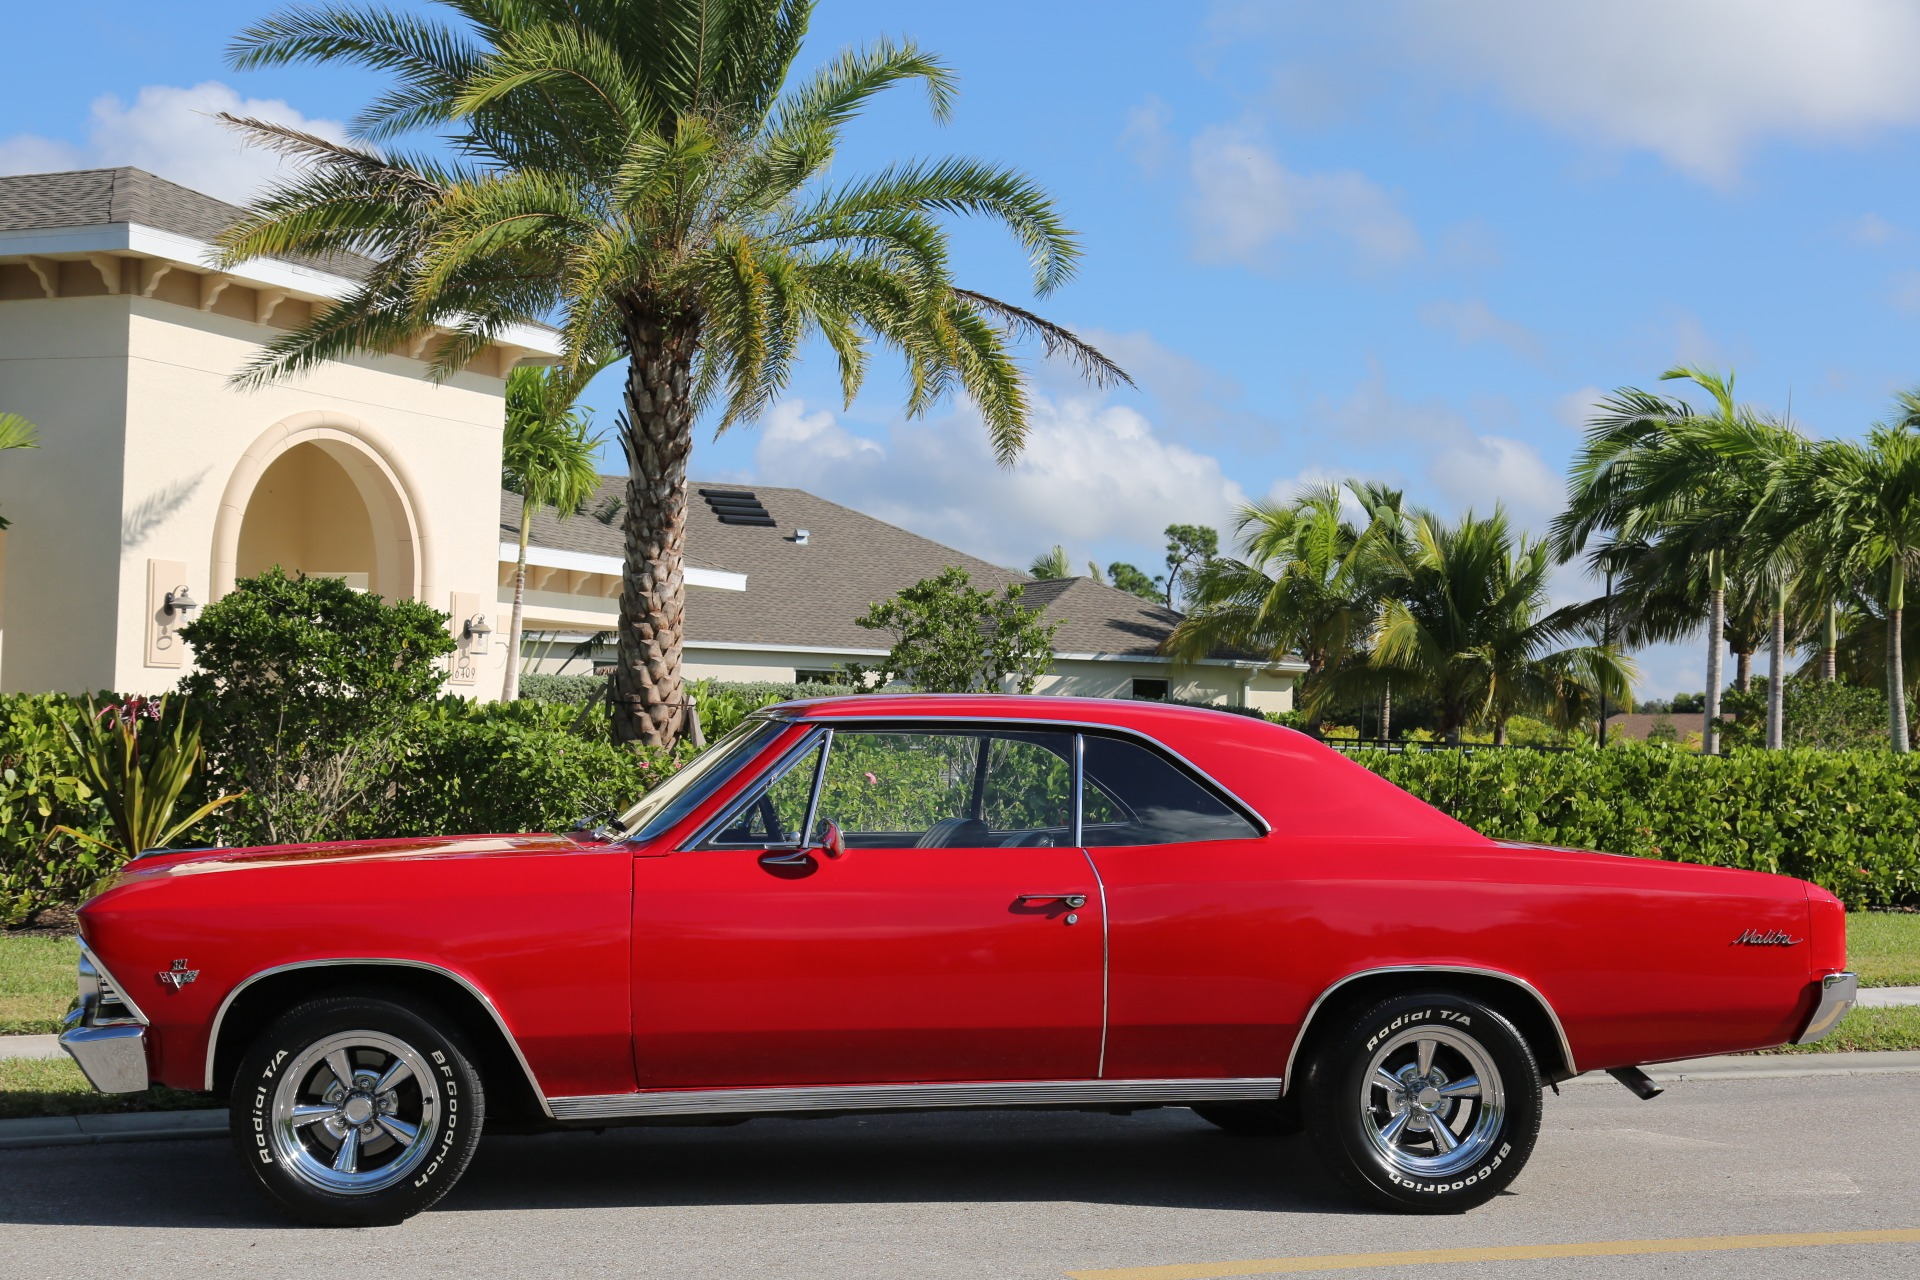 Used 1966 Chevrolet Chevelle Malibu 327 for sale Sold at Muscle Cars for Sale Inc. in Fort Myers FL 33912 5